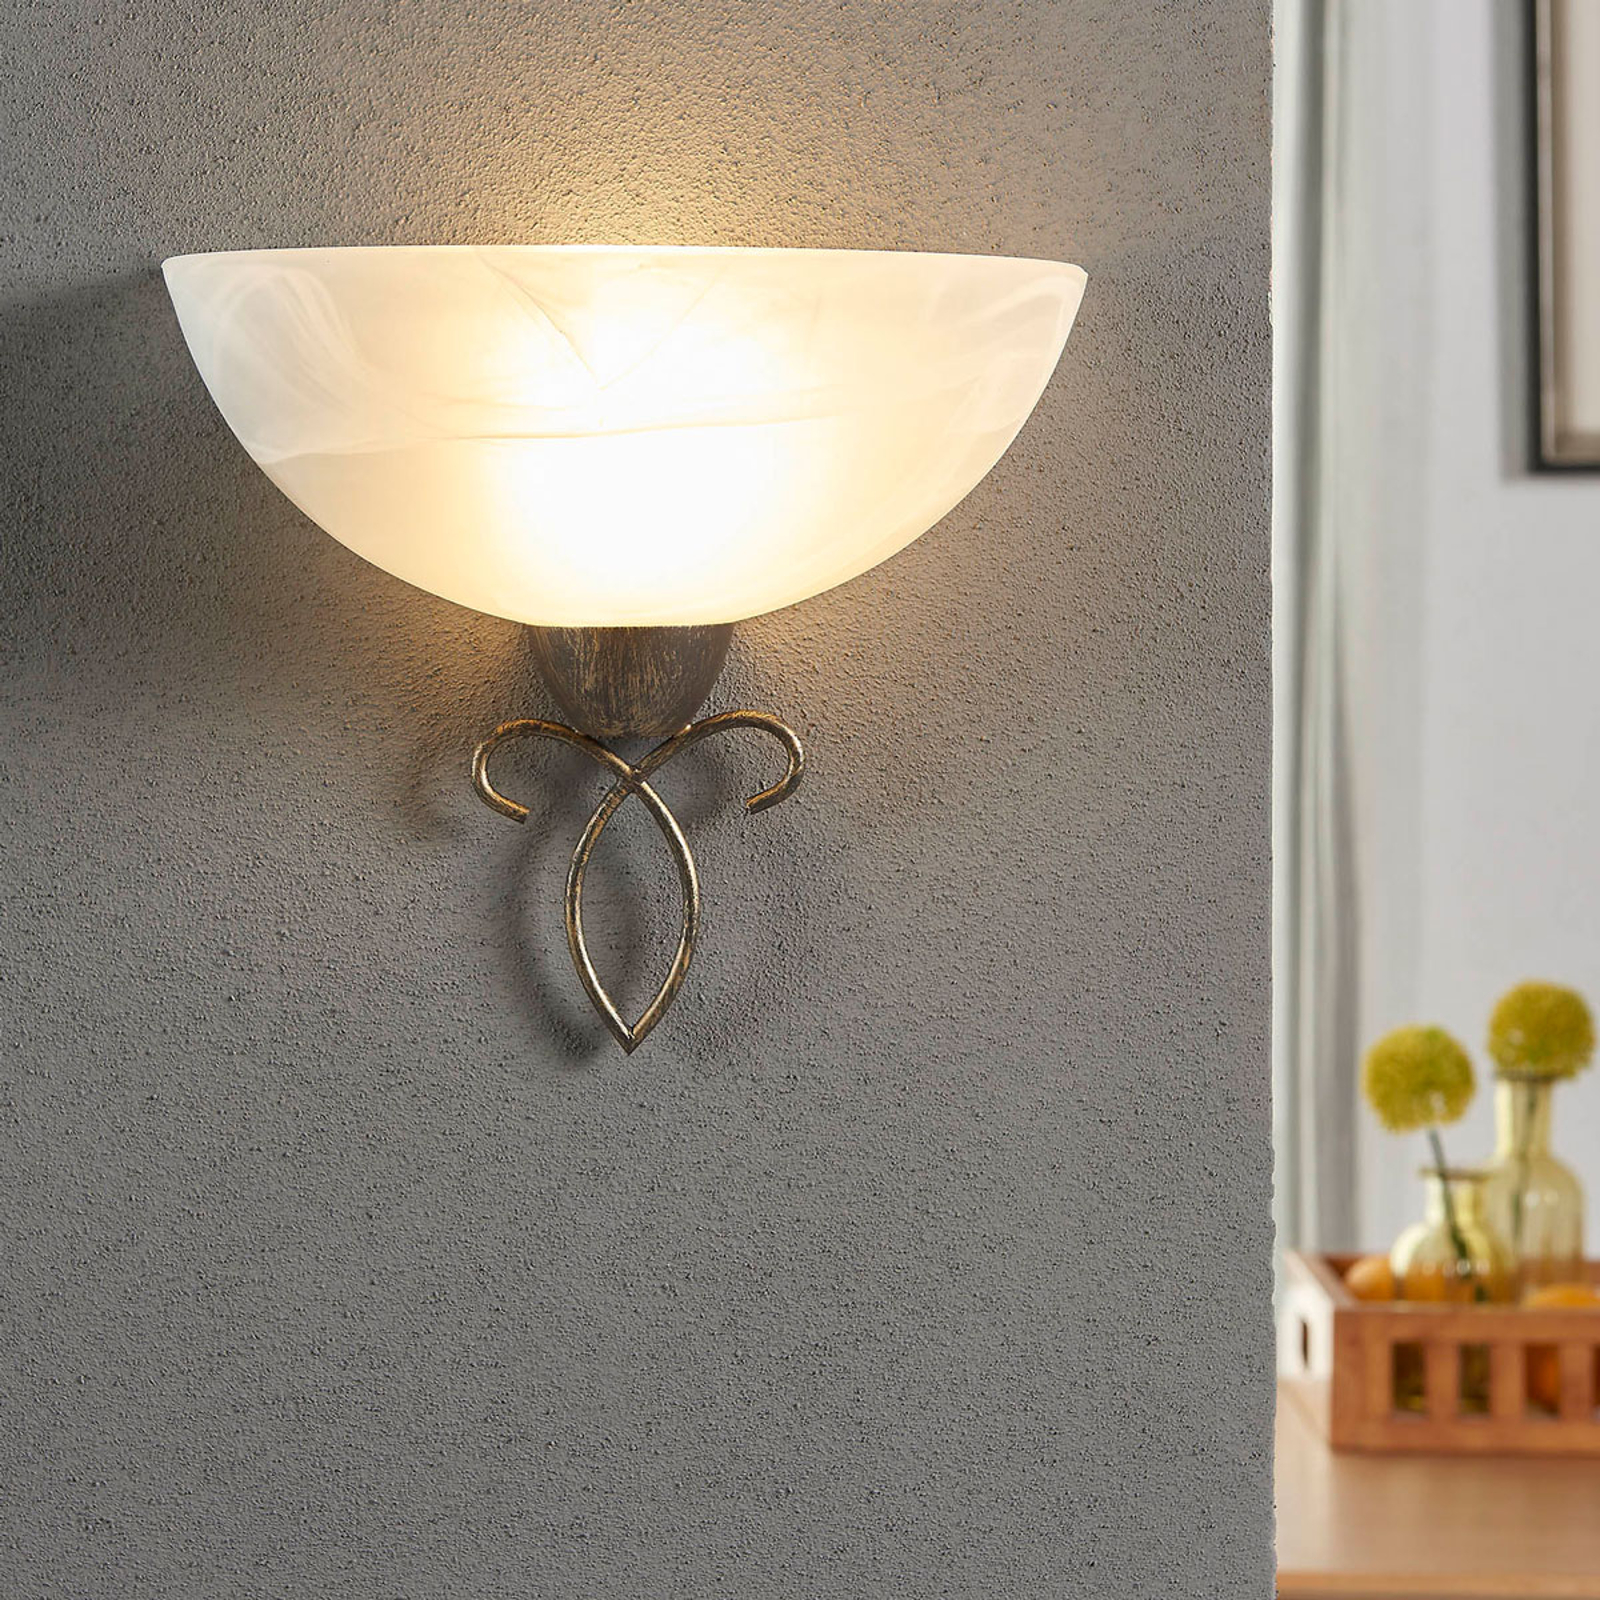 Wall light Mohija with a romantic look_9620869_1